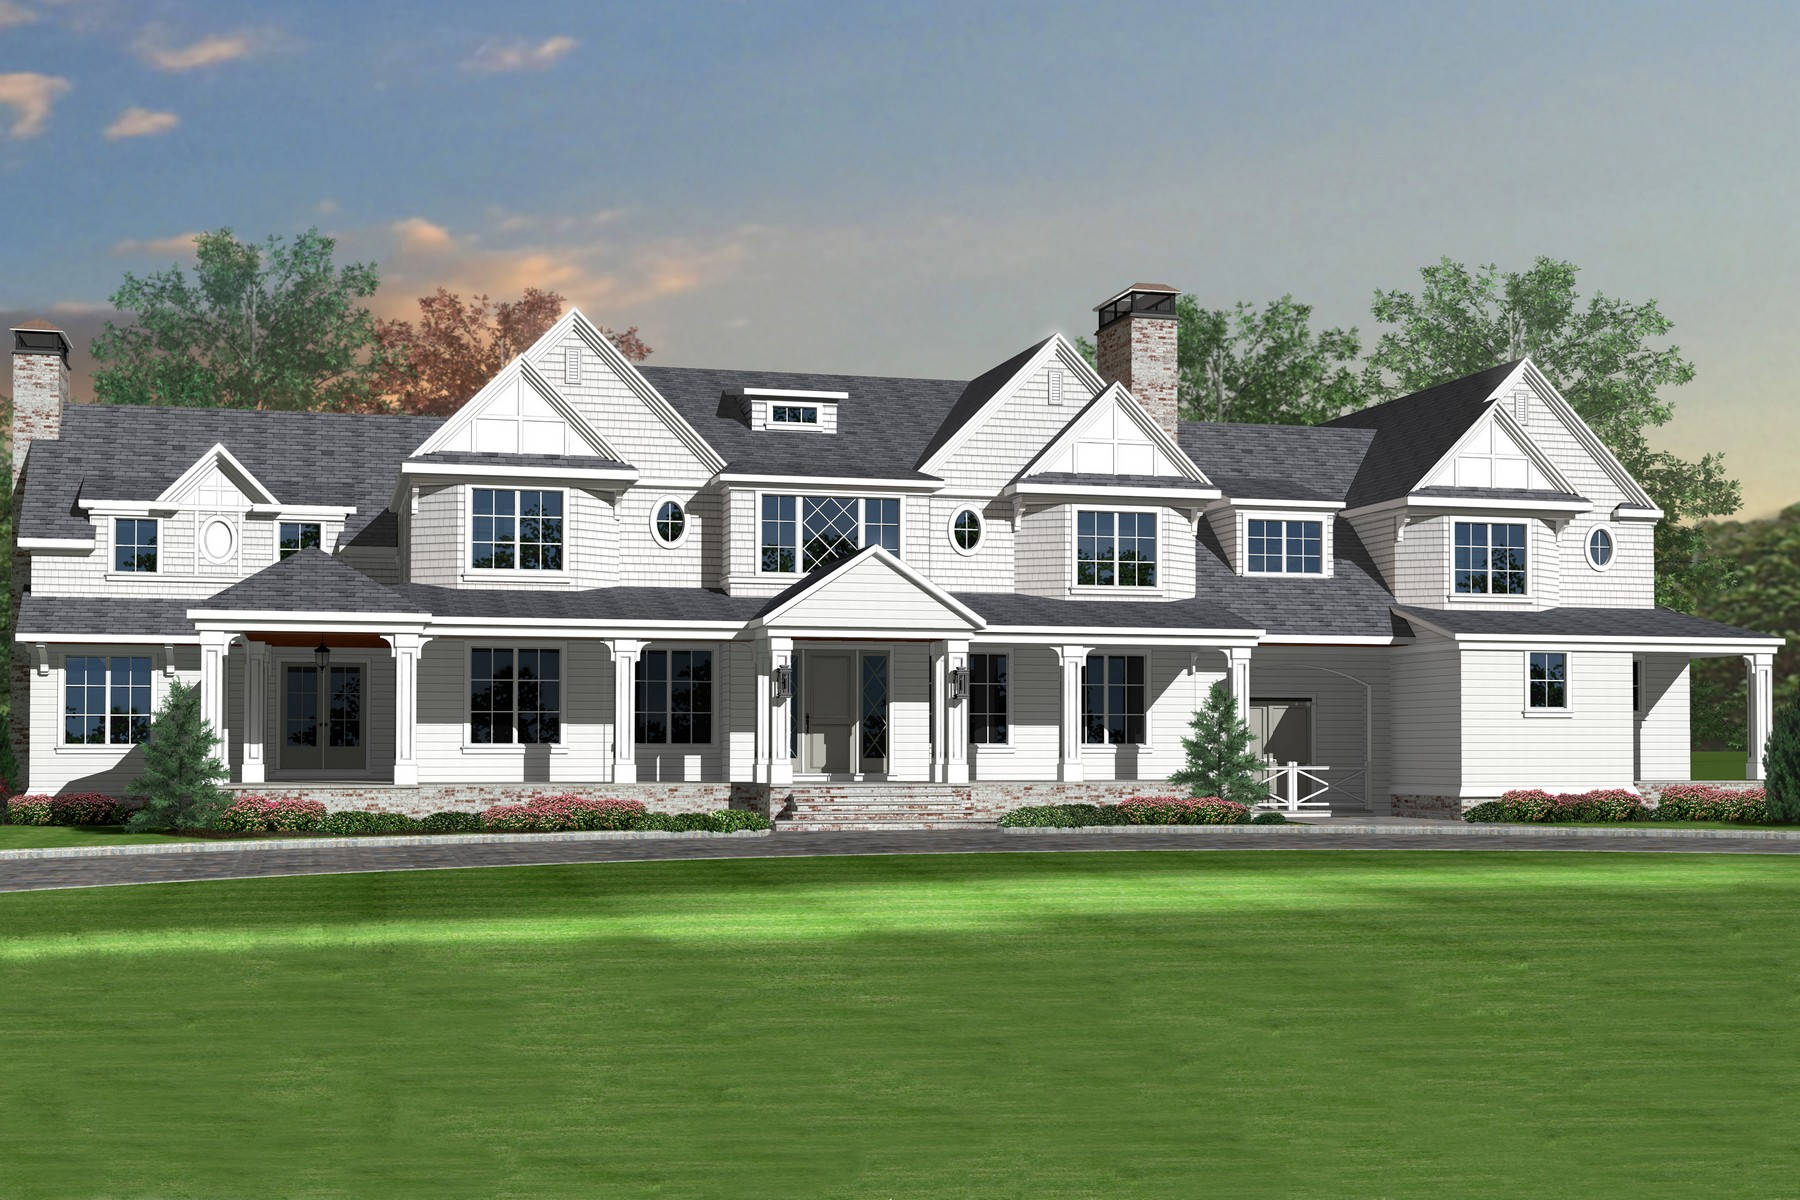 Single Family Home for Sale at The Art of Distinction 20 Conover Ln Rumson, New Jersey, 07760 United States